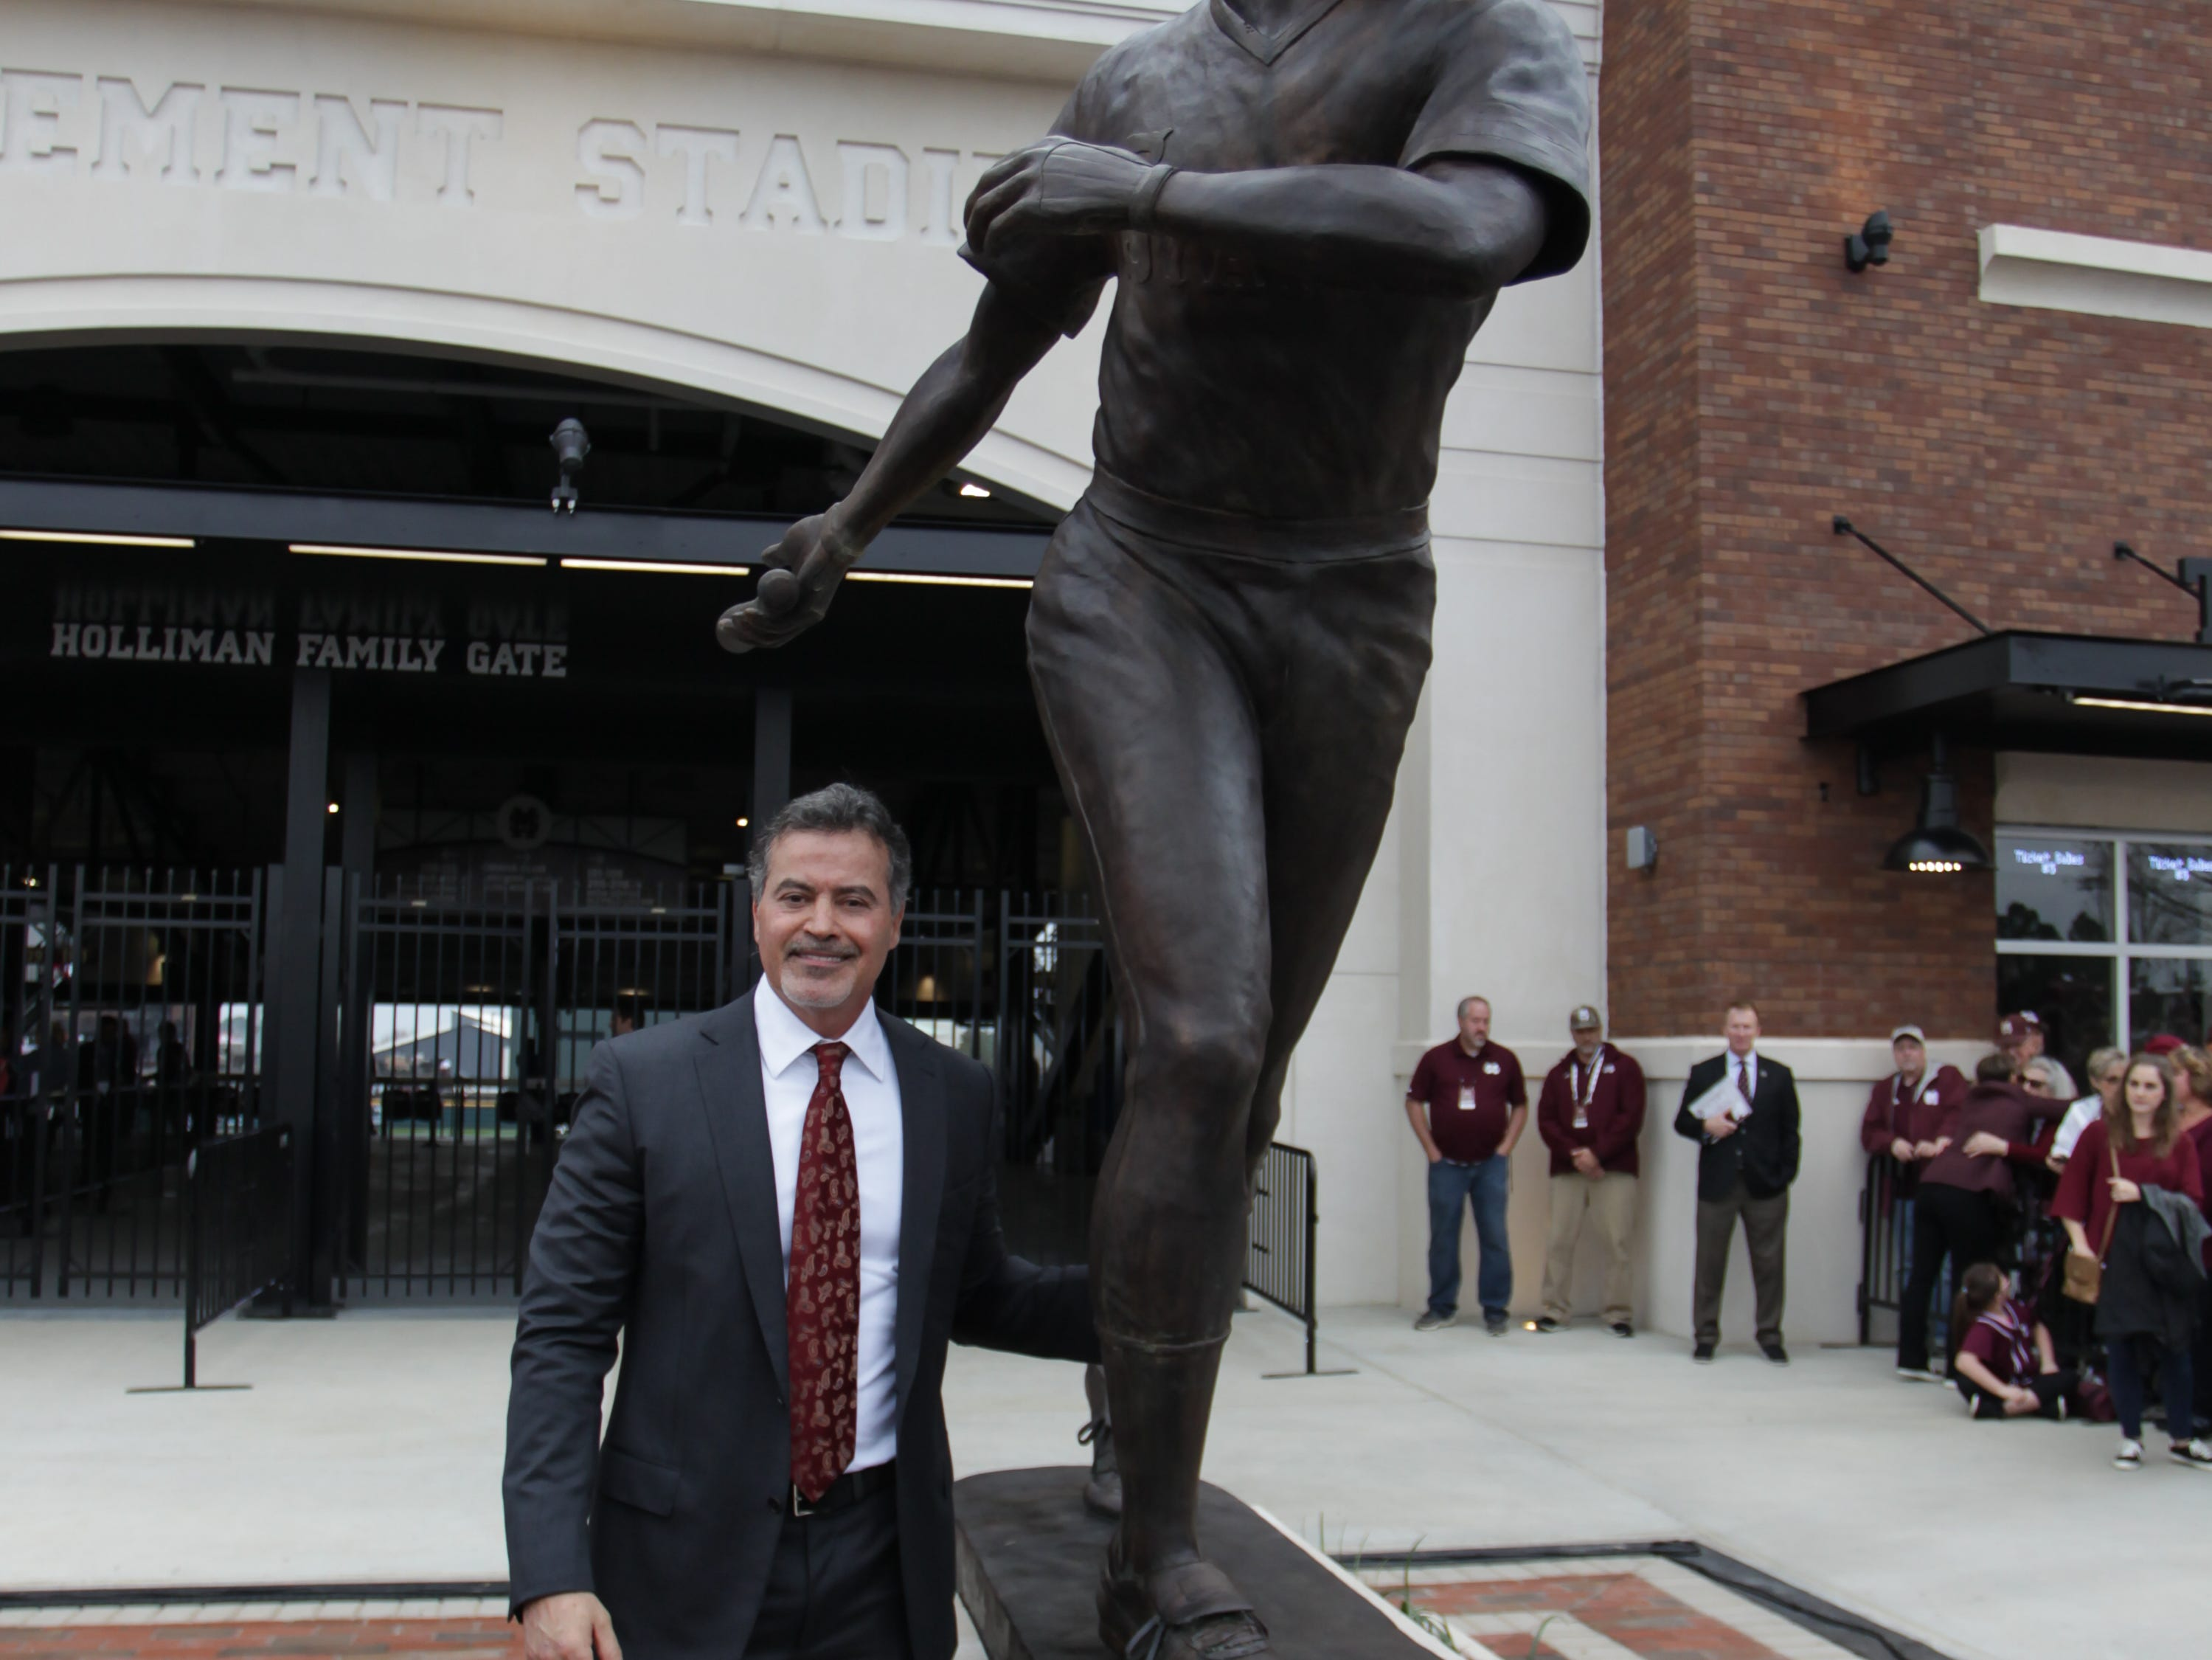 Rafael Palmeiro stands beside a statue commorating his playing days at MSU. Mississippi State opened the 2019 baseball season against Youngstown State on Friday, February 15, 2019. Photo by Keith Warren